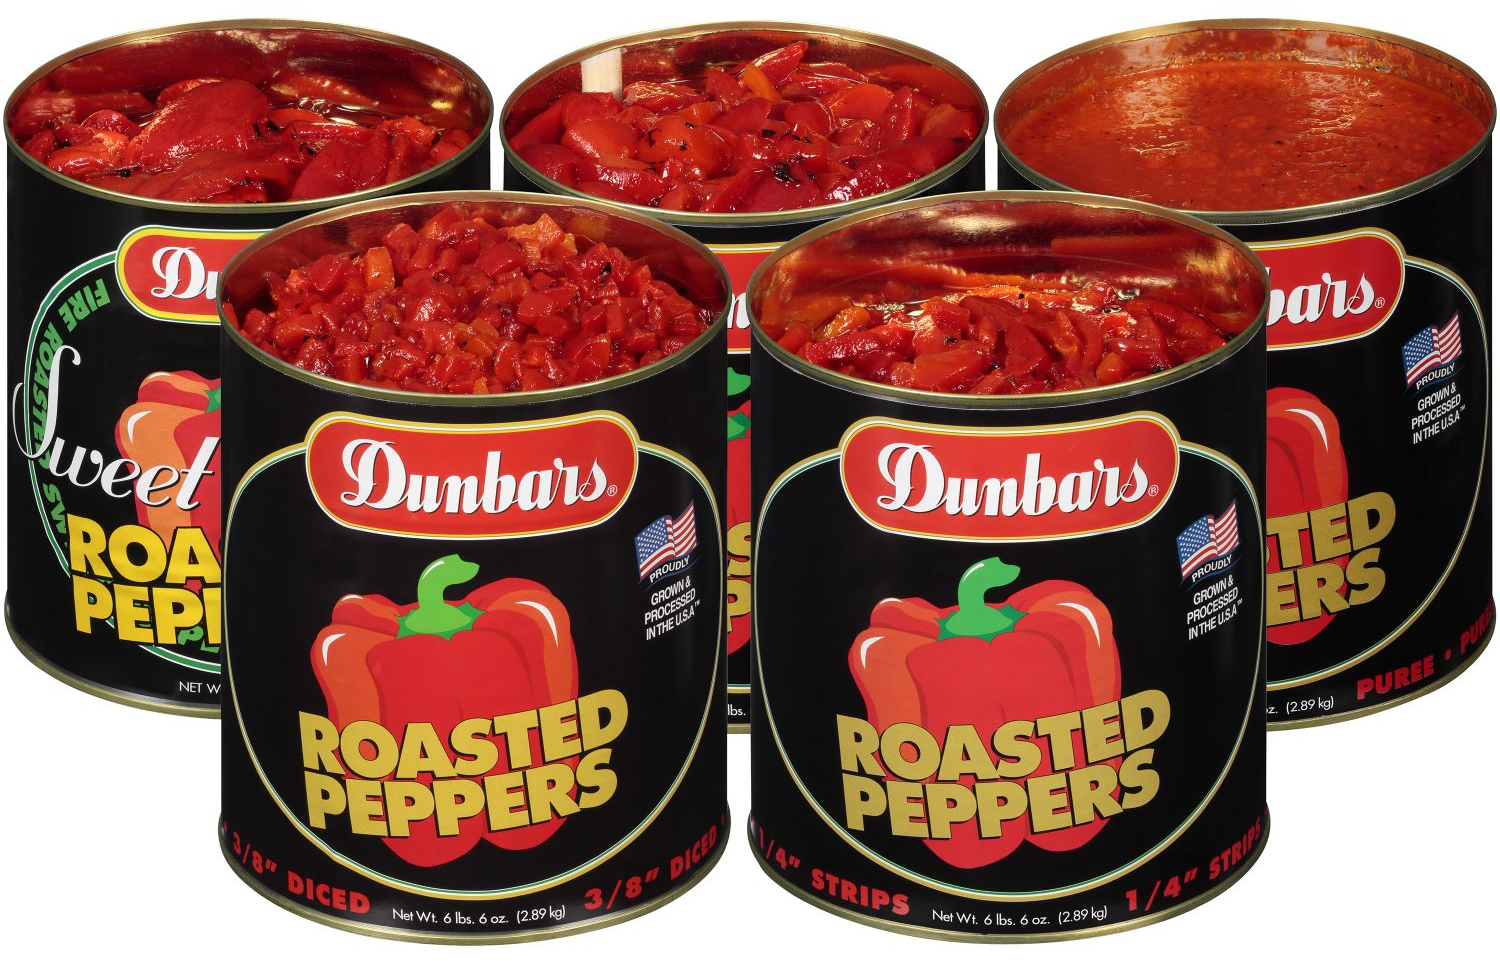 Dunbars Roasted Peppers #10 cans, Diced, Strips, Puree and Pieces